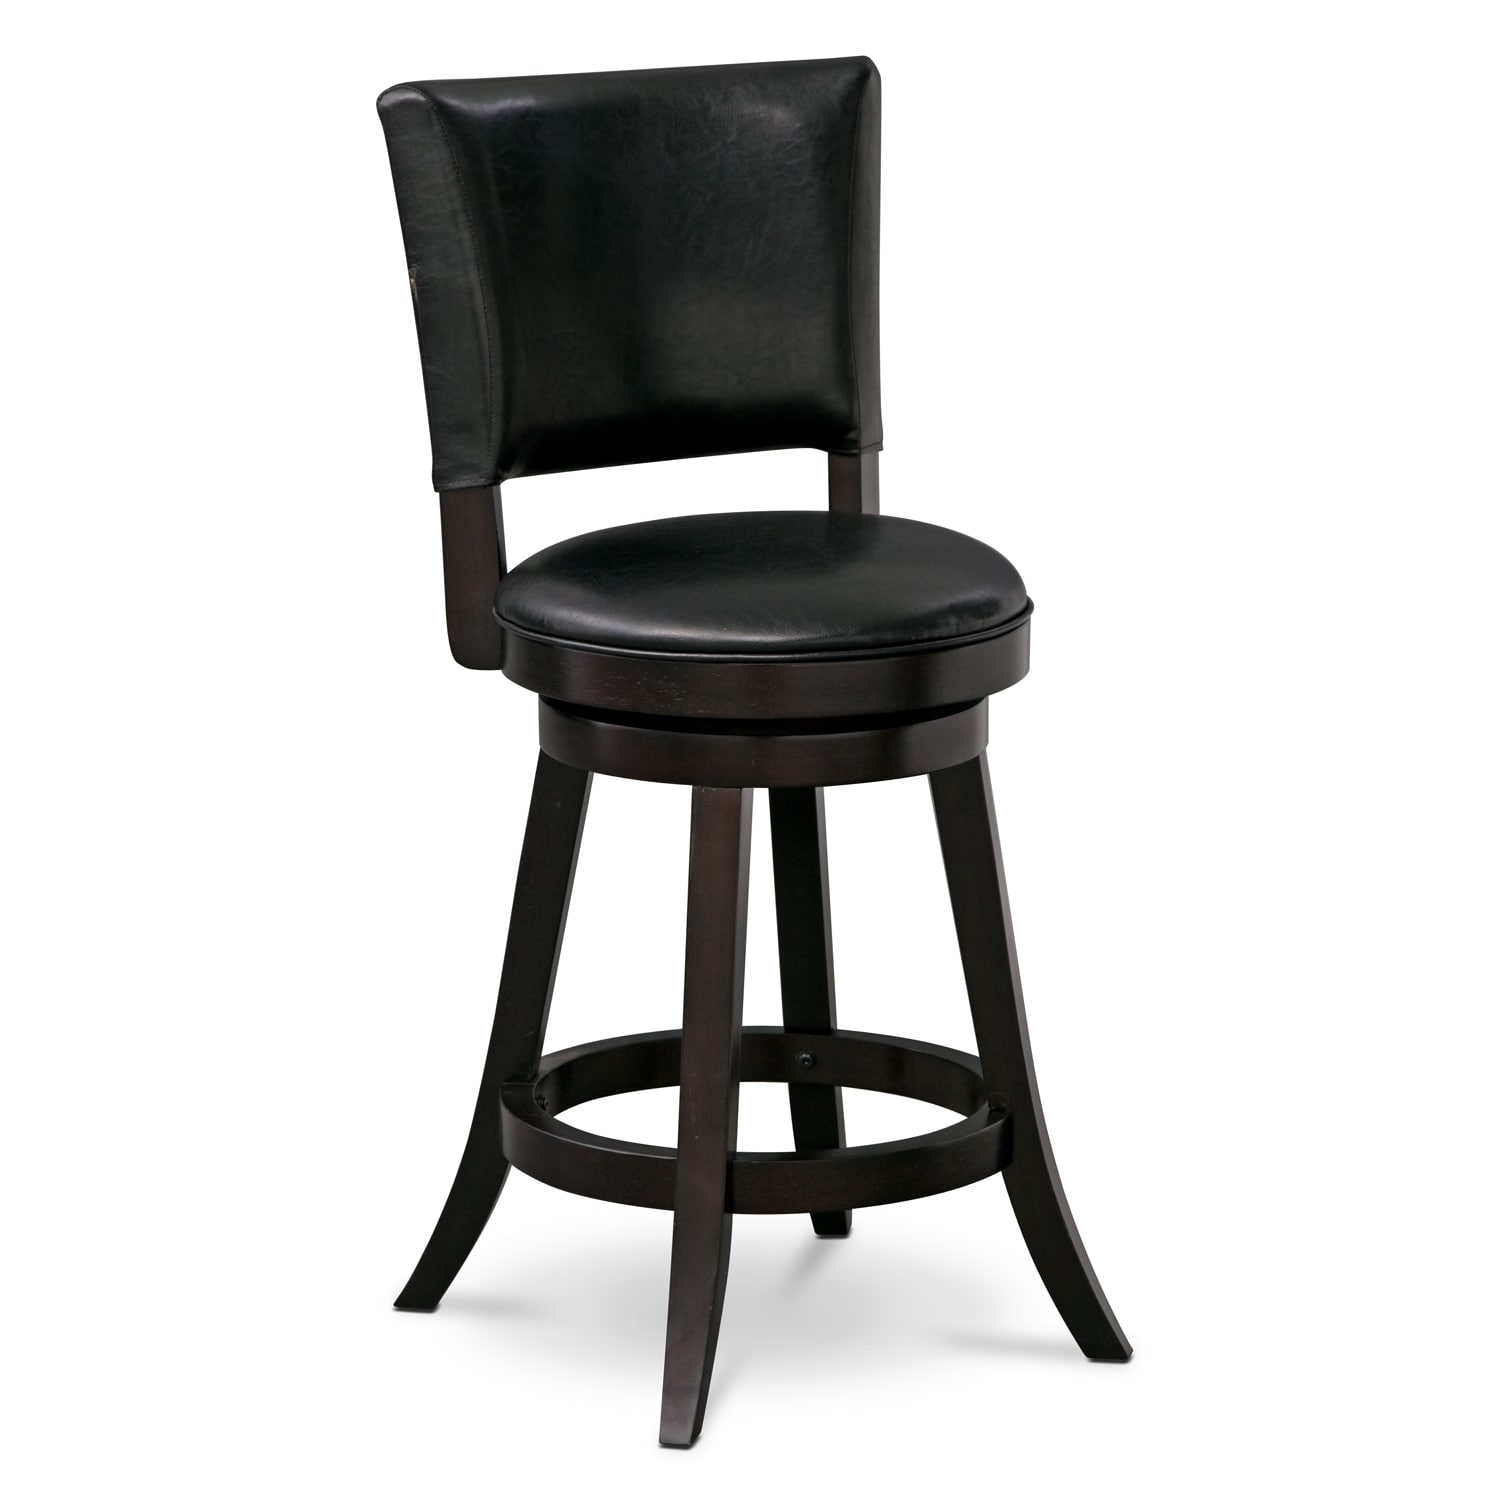 Dining Room Furniture - Easton Counter-Height Stool - Black